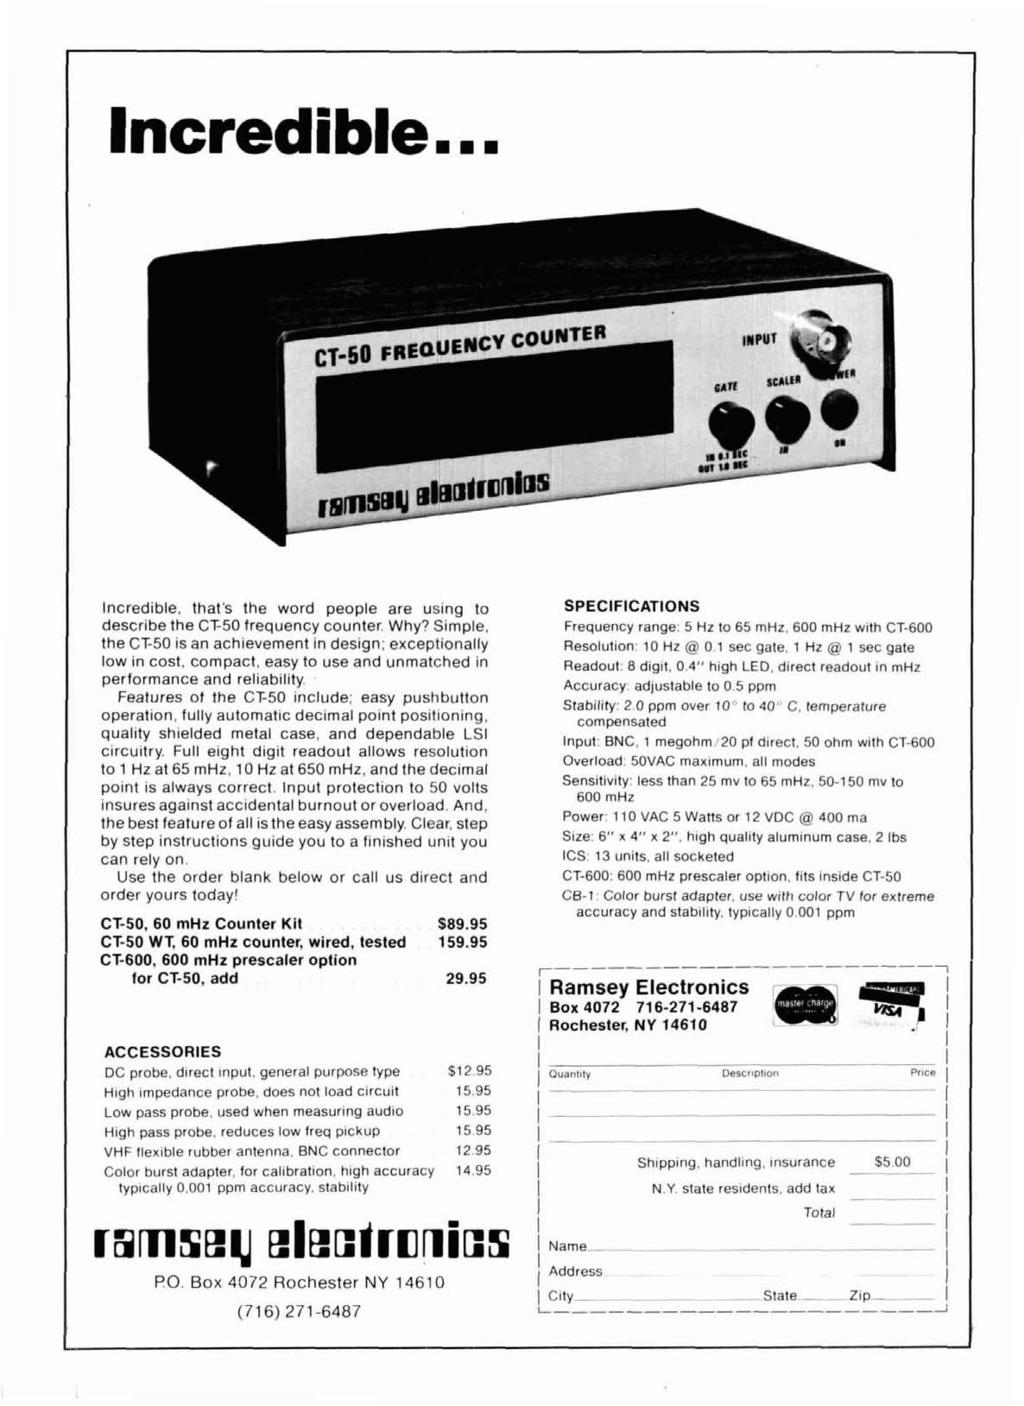 Radio Ham Magazine July 1978 J Antenna 74 Variable Power Supply 36 Lm741 Simple Dc Amplifier Can Be Added To Afc Circuit Of Fm Tuner Ncredible Thats The Word People Are Using Describe Cf50